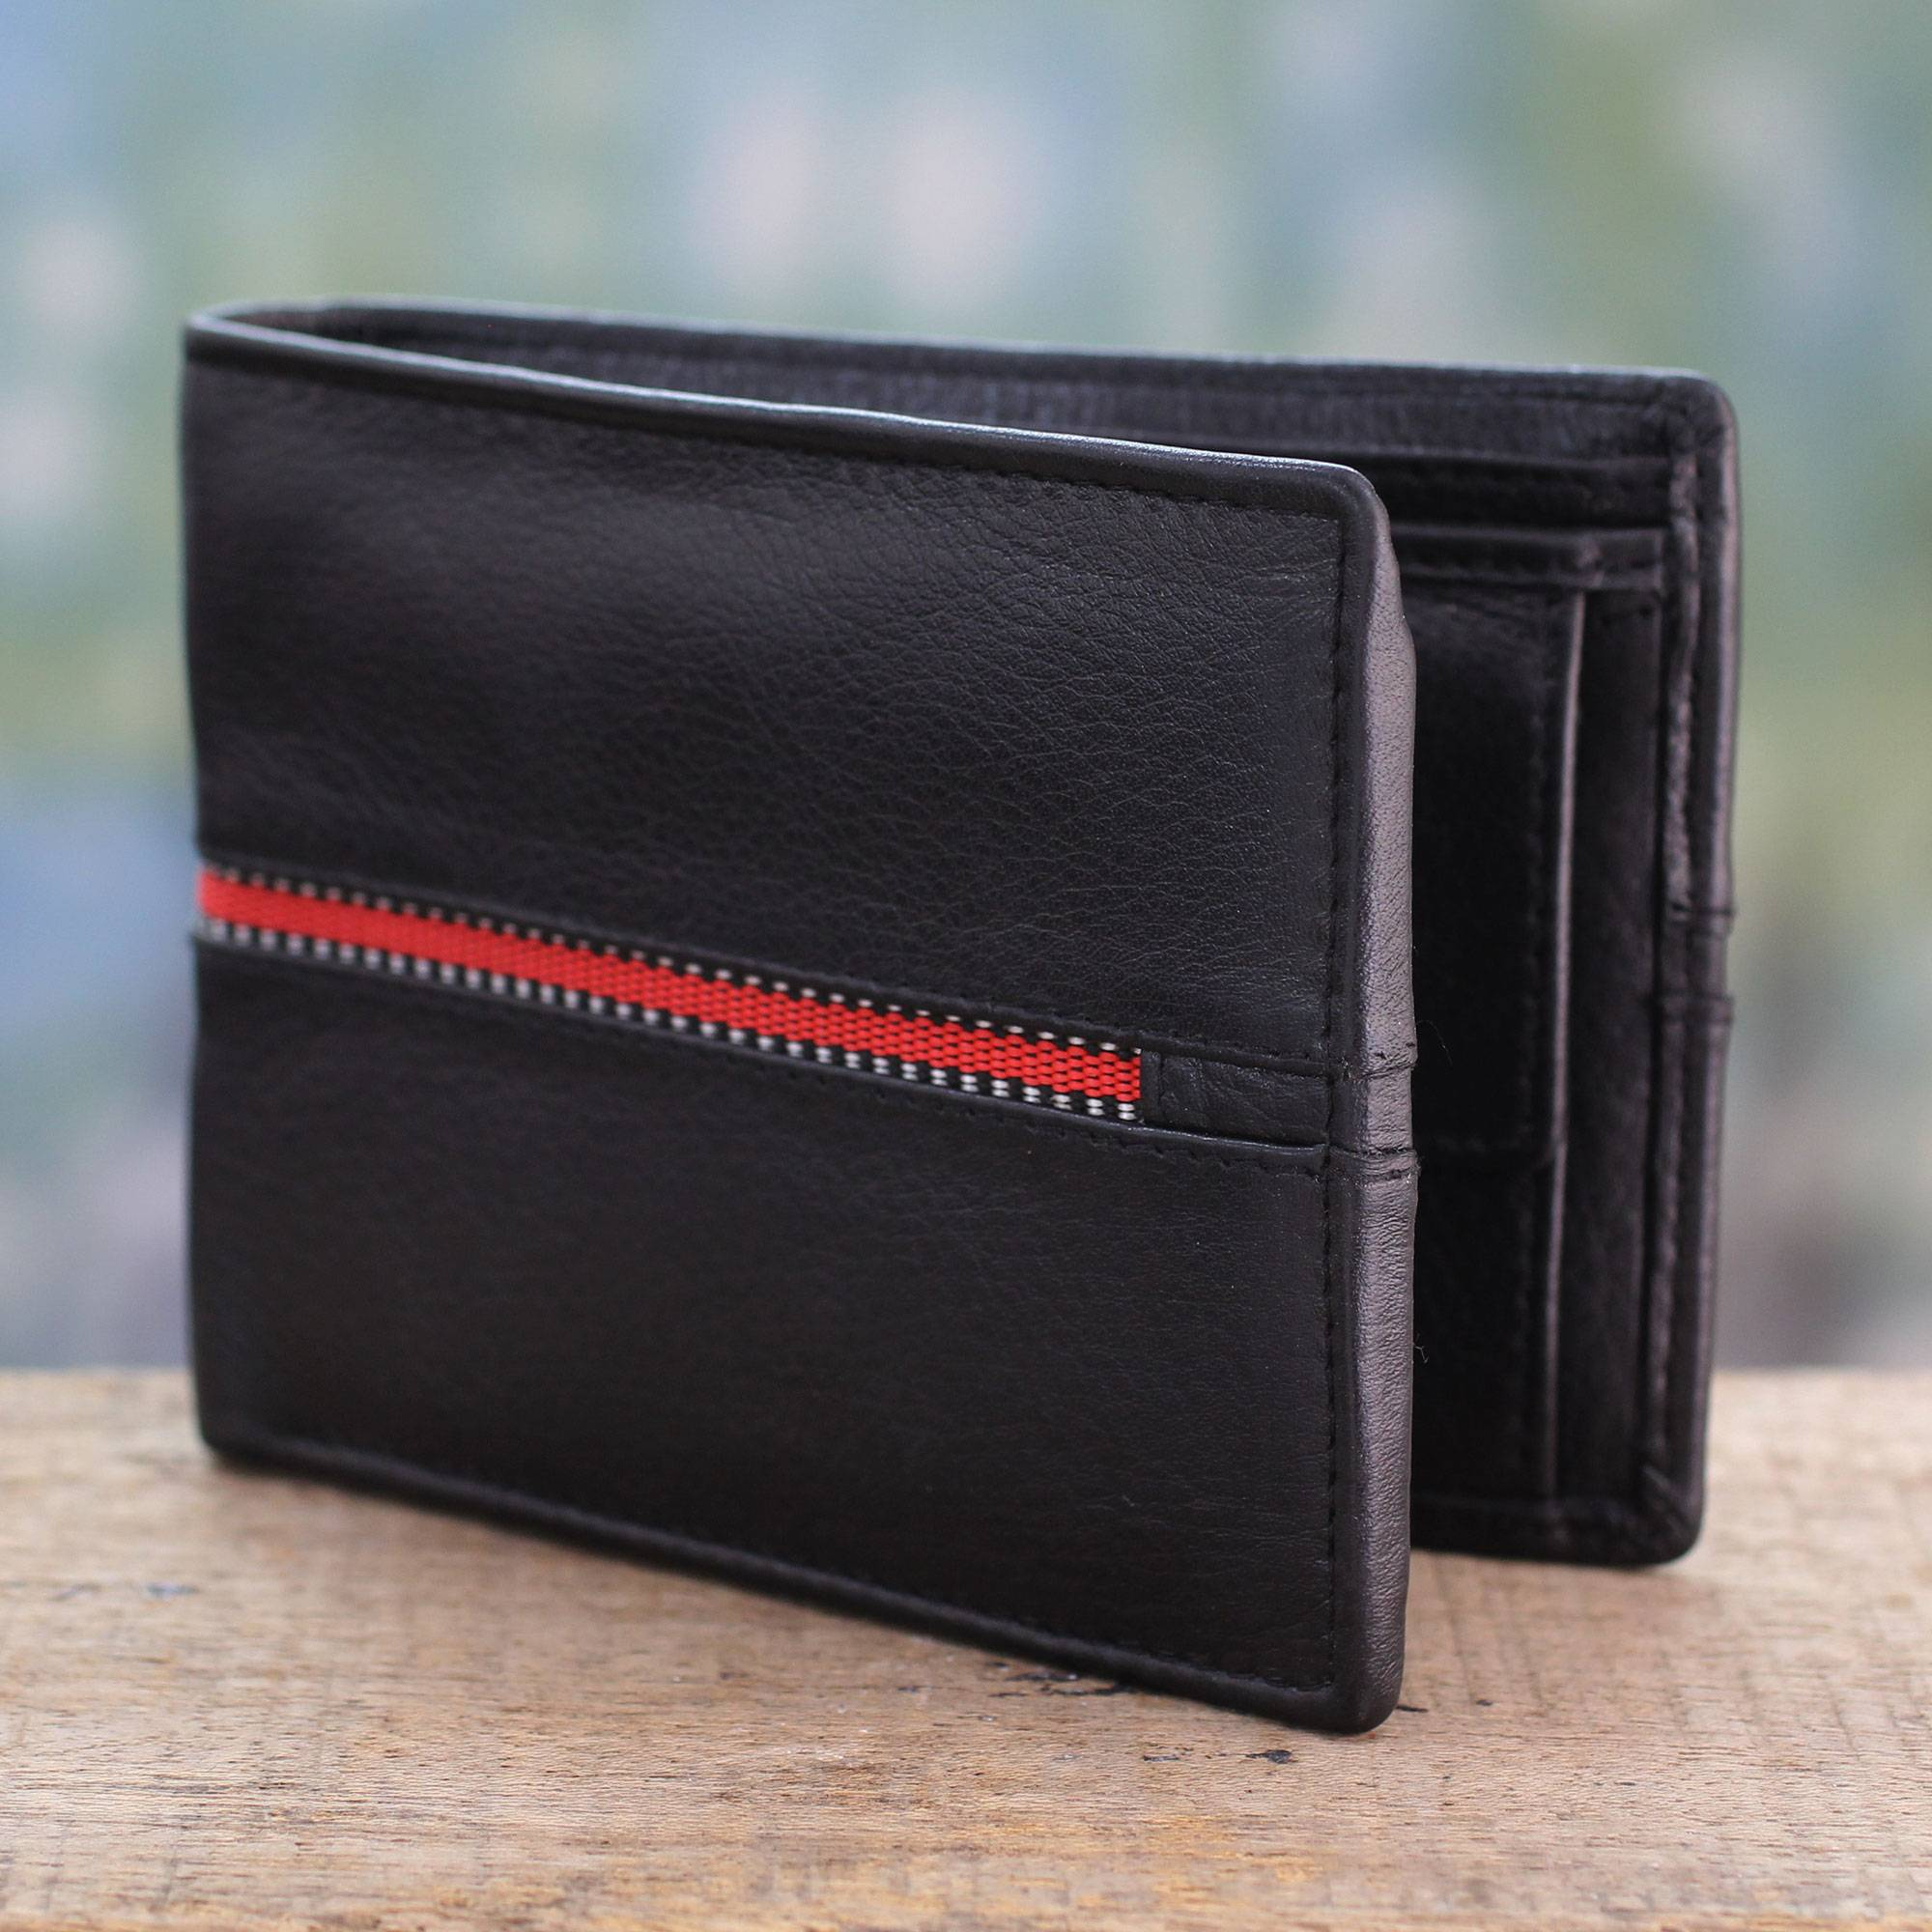 Suave in Red Black Leather Wallet for Men with Multiple Pockets small gift